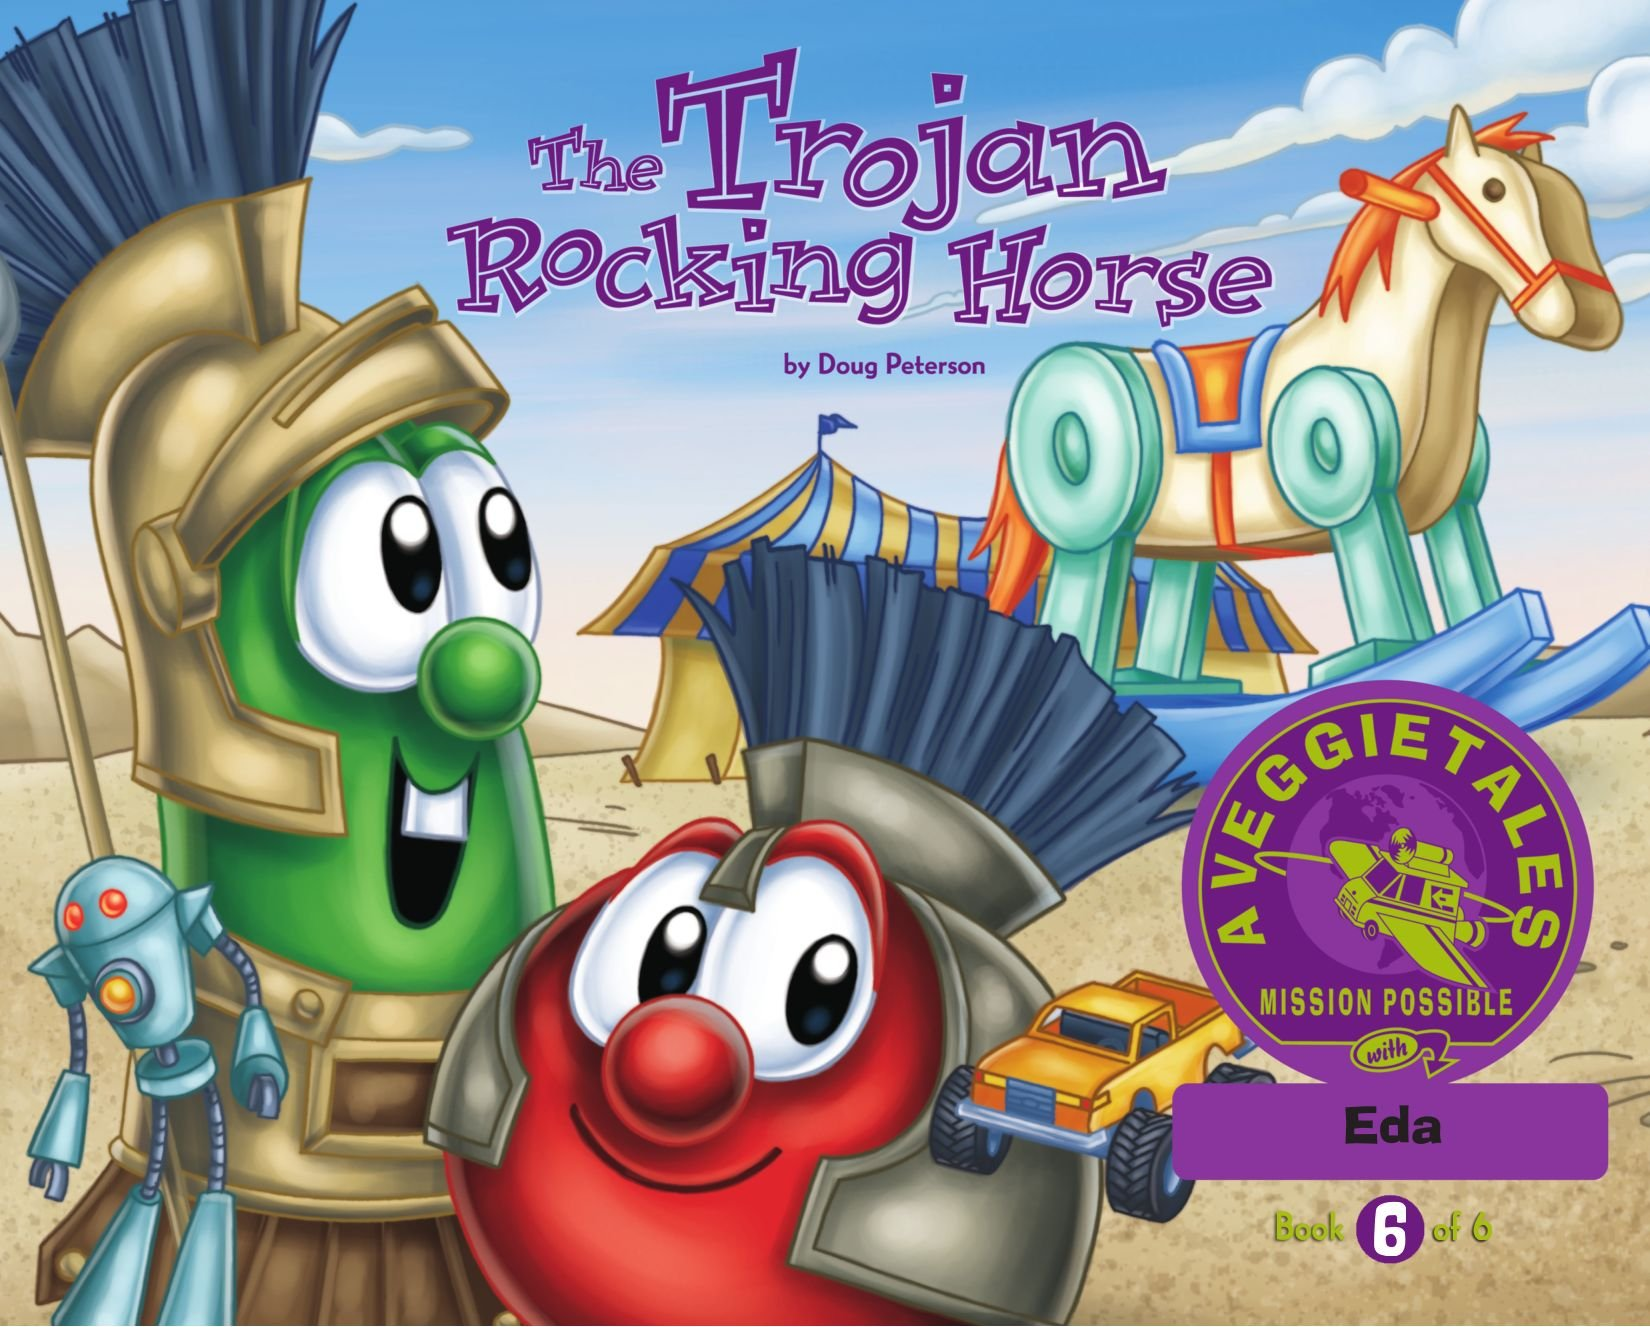 The Trojan Rocking Horse - VeggieTales Mission Possible Adventure Series #6: Personalized for Eda (Girl) pdf